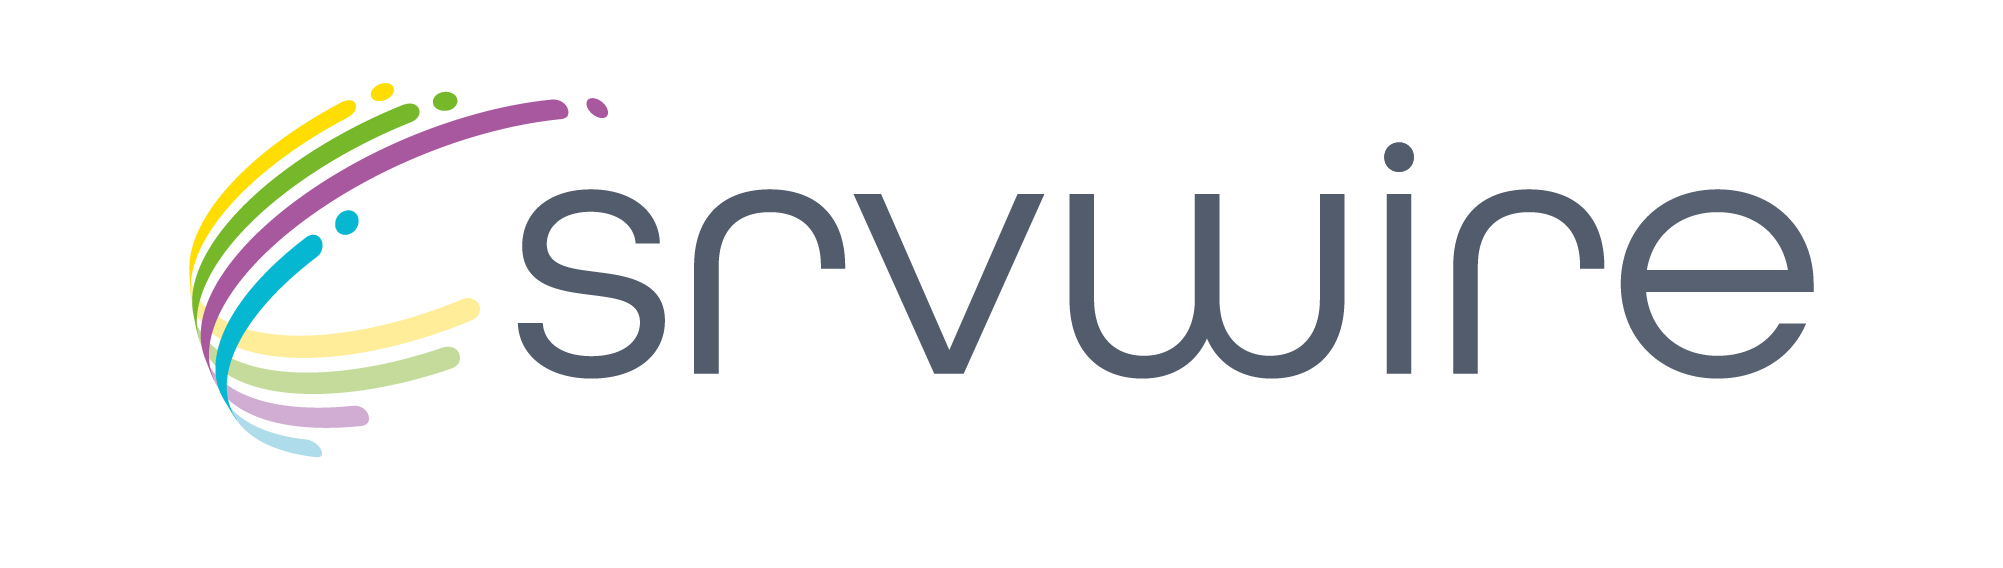 Srvwire - A Division Of The XZ Group LTD